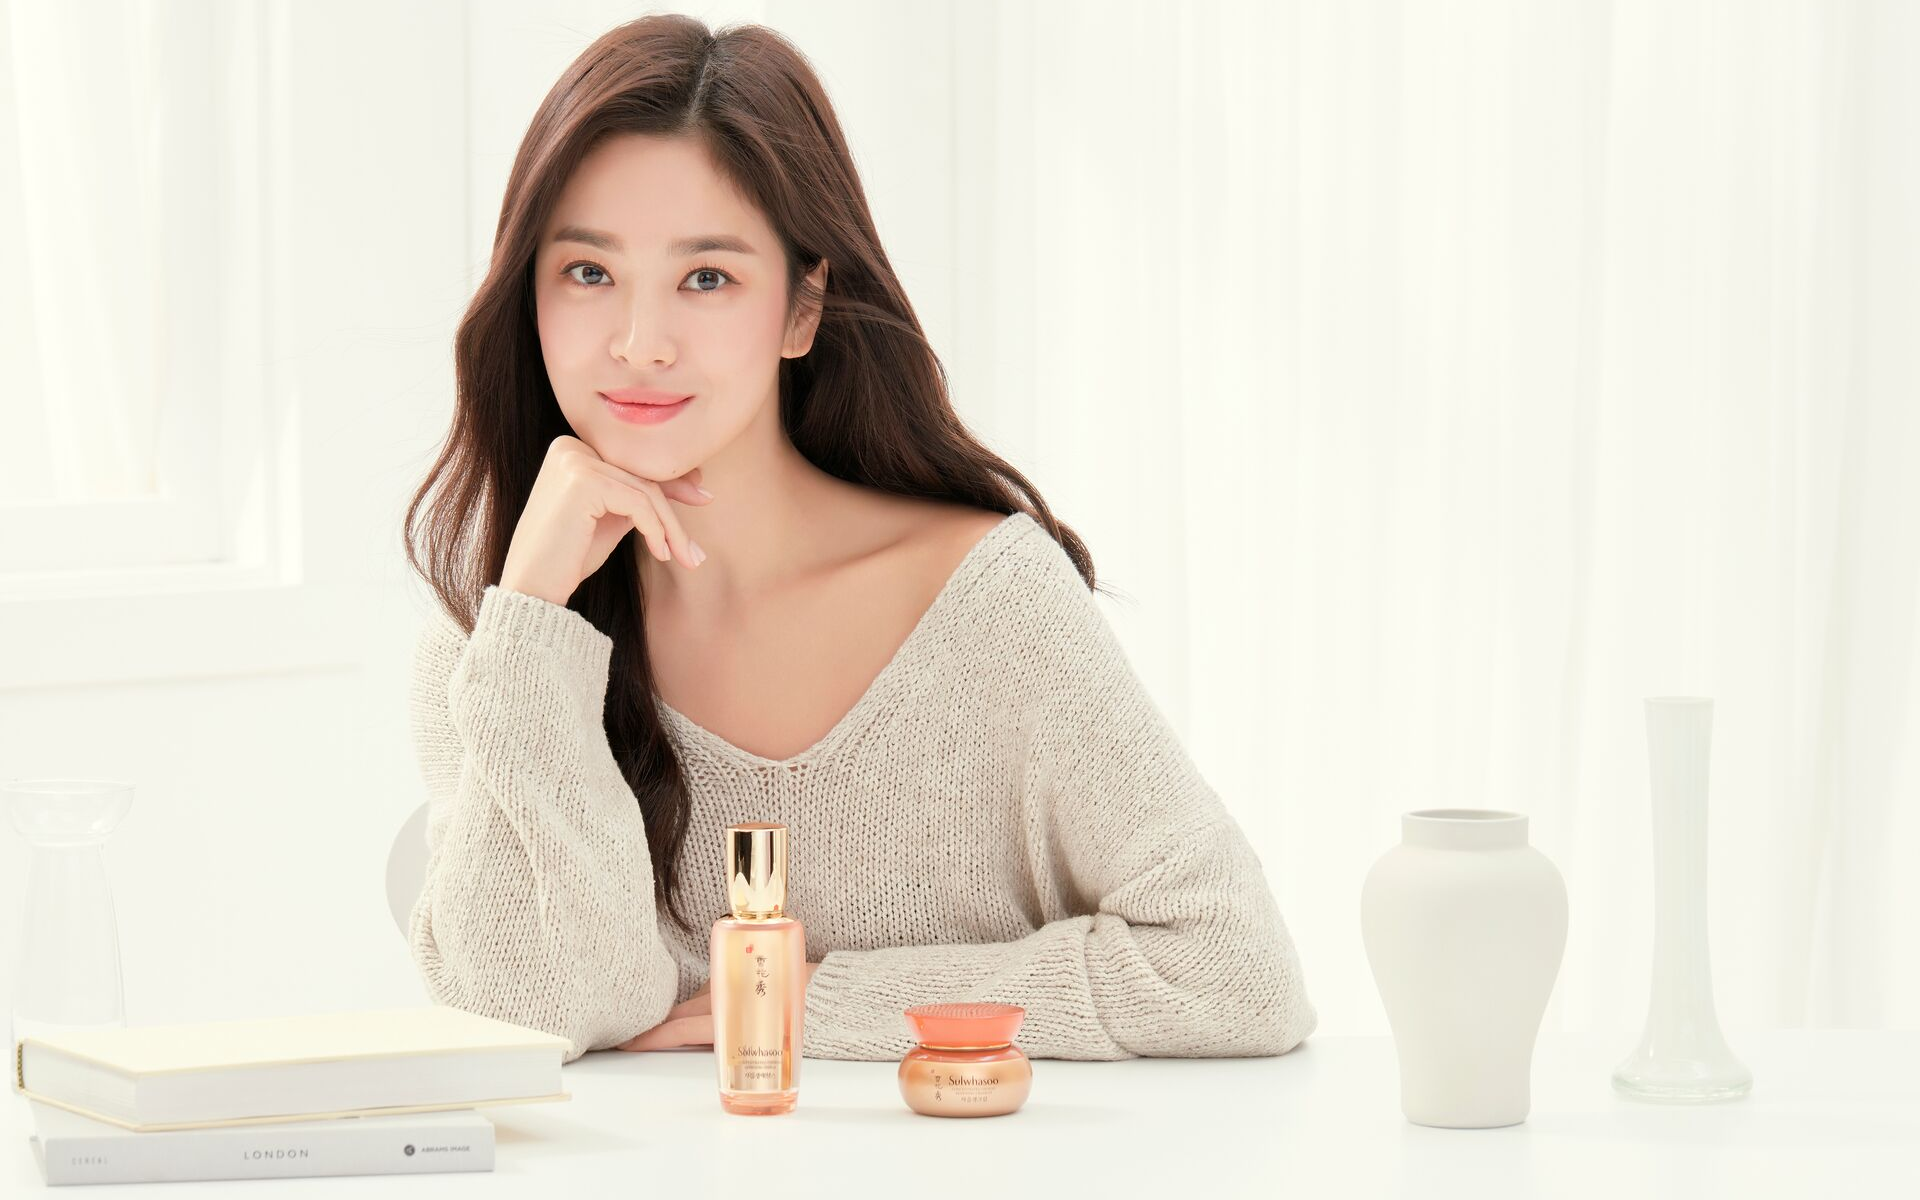 Song Hye Kyo for Sulwhasoo. Photo: Courtesy of Sulwhasoo